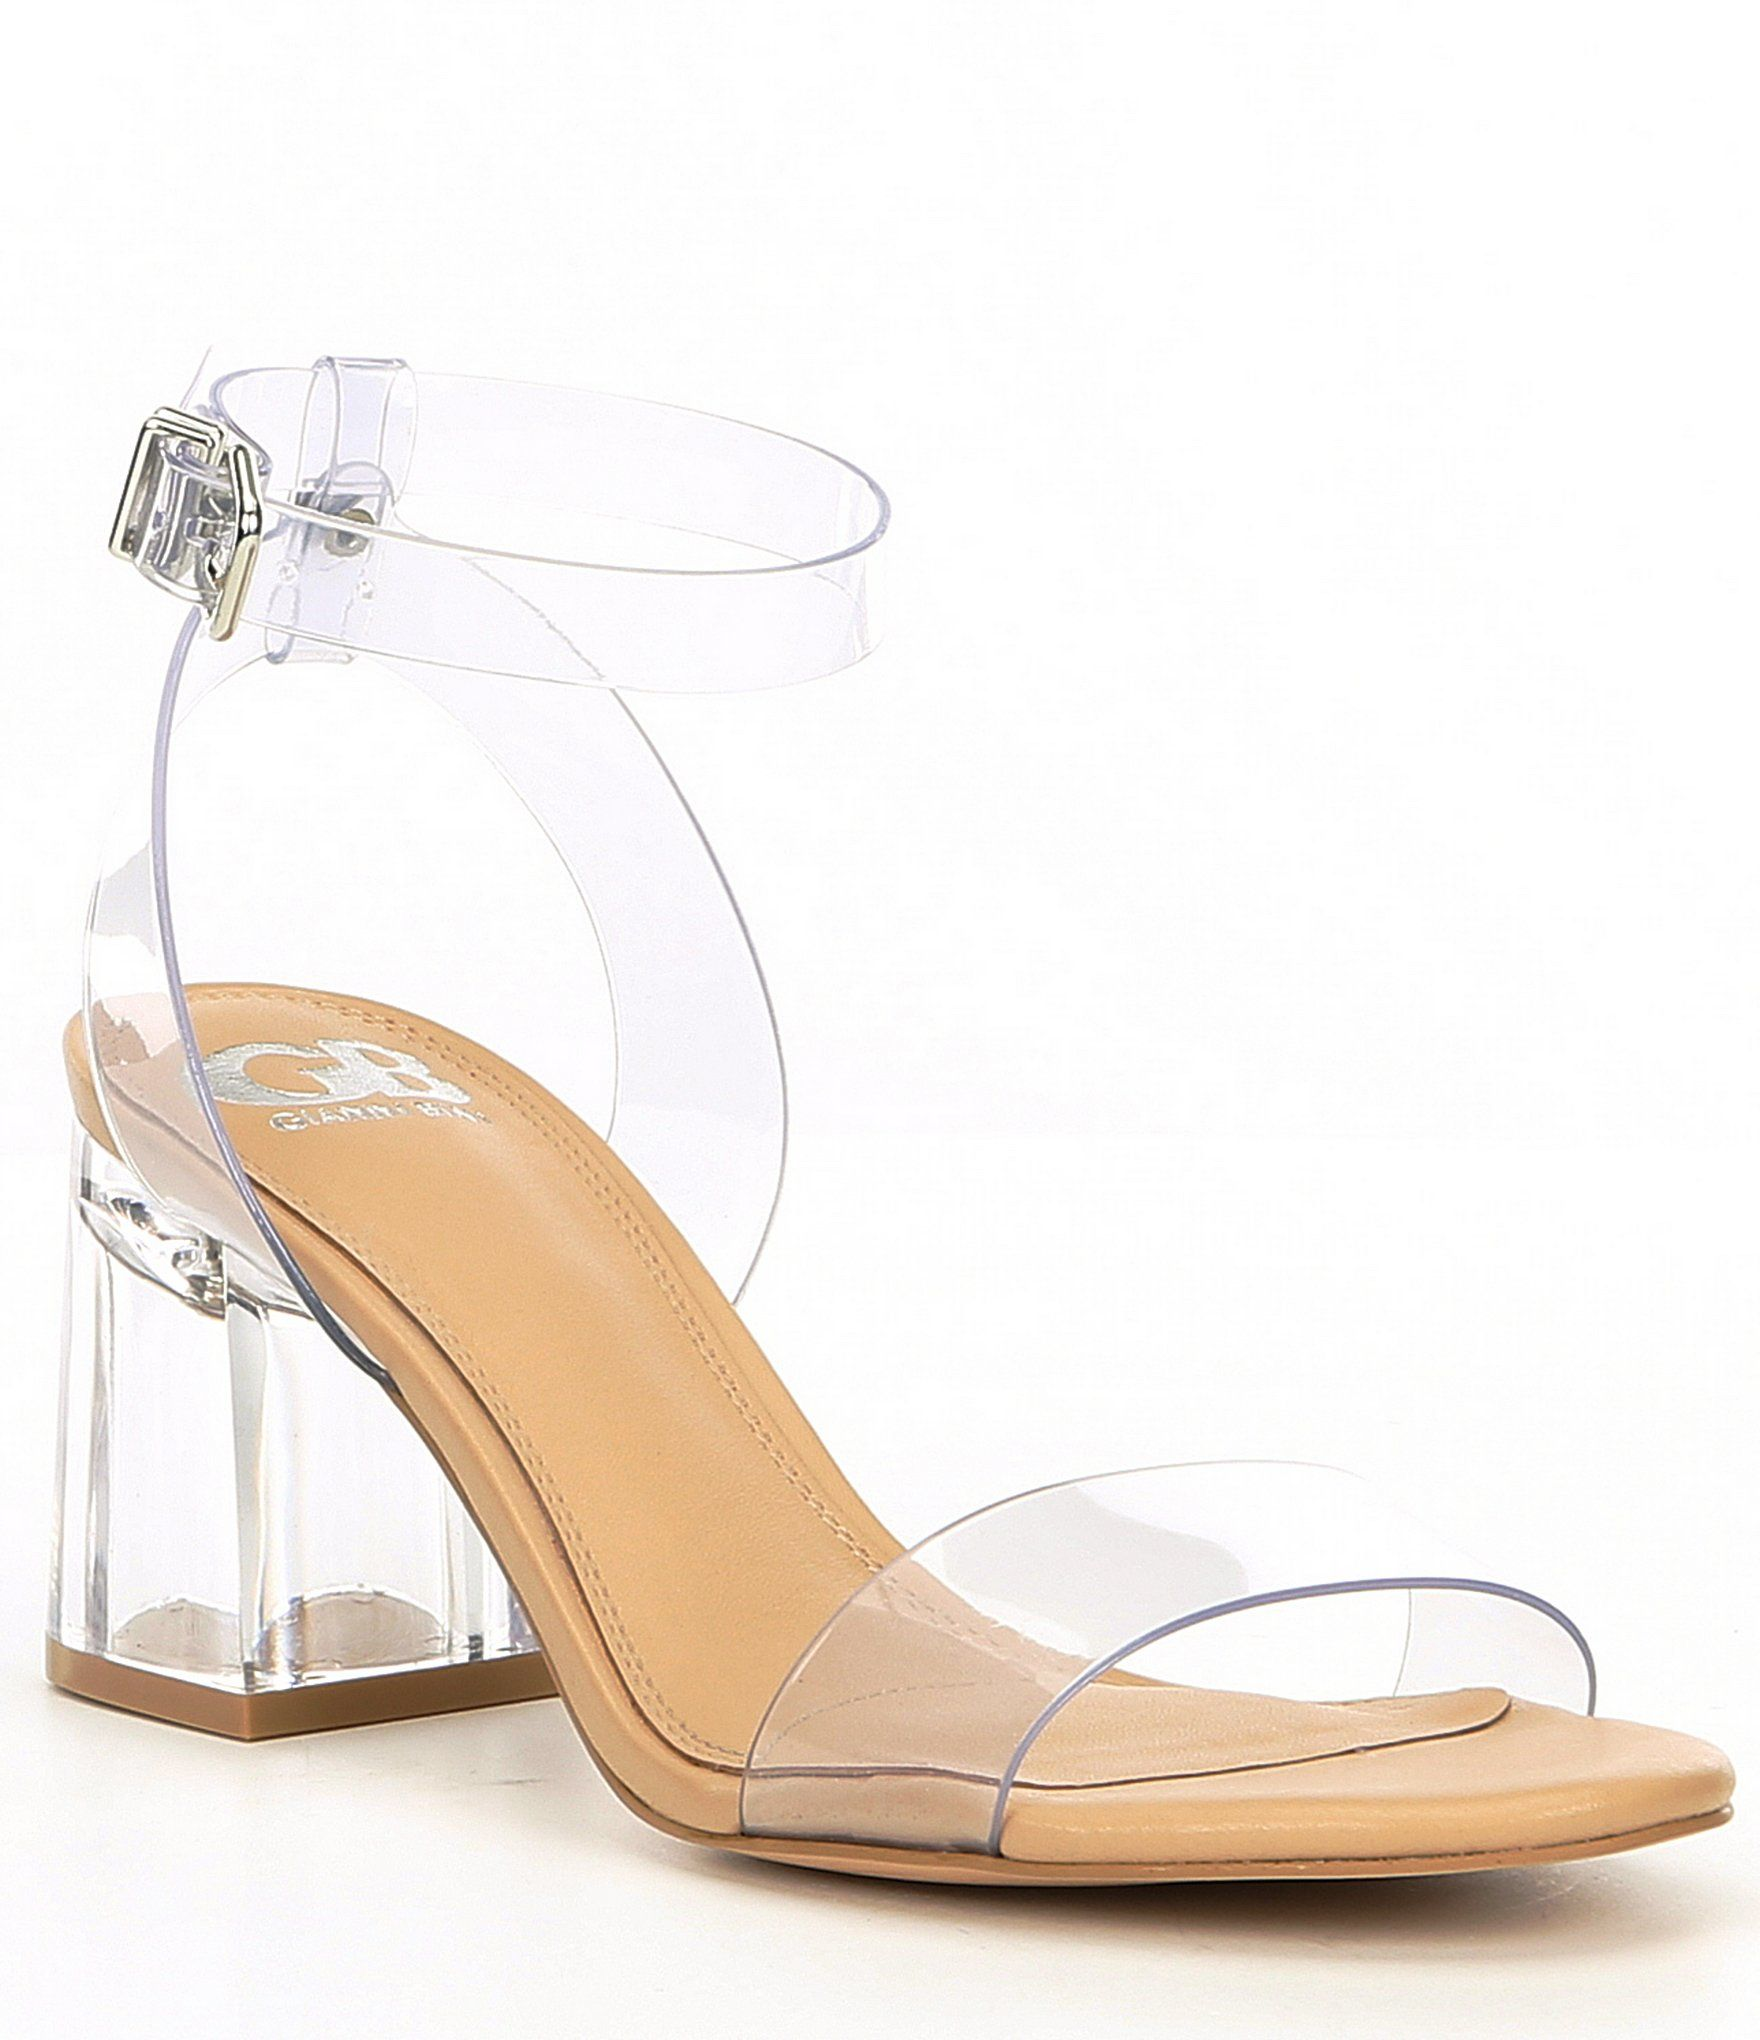 WOMENS LADIES ANKLE STRAP MID BLOCK HEEL PUMPS CLEAR STYLE SHOES SIZE UK